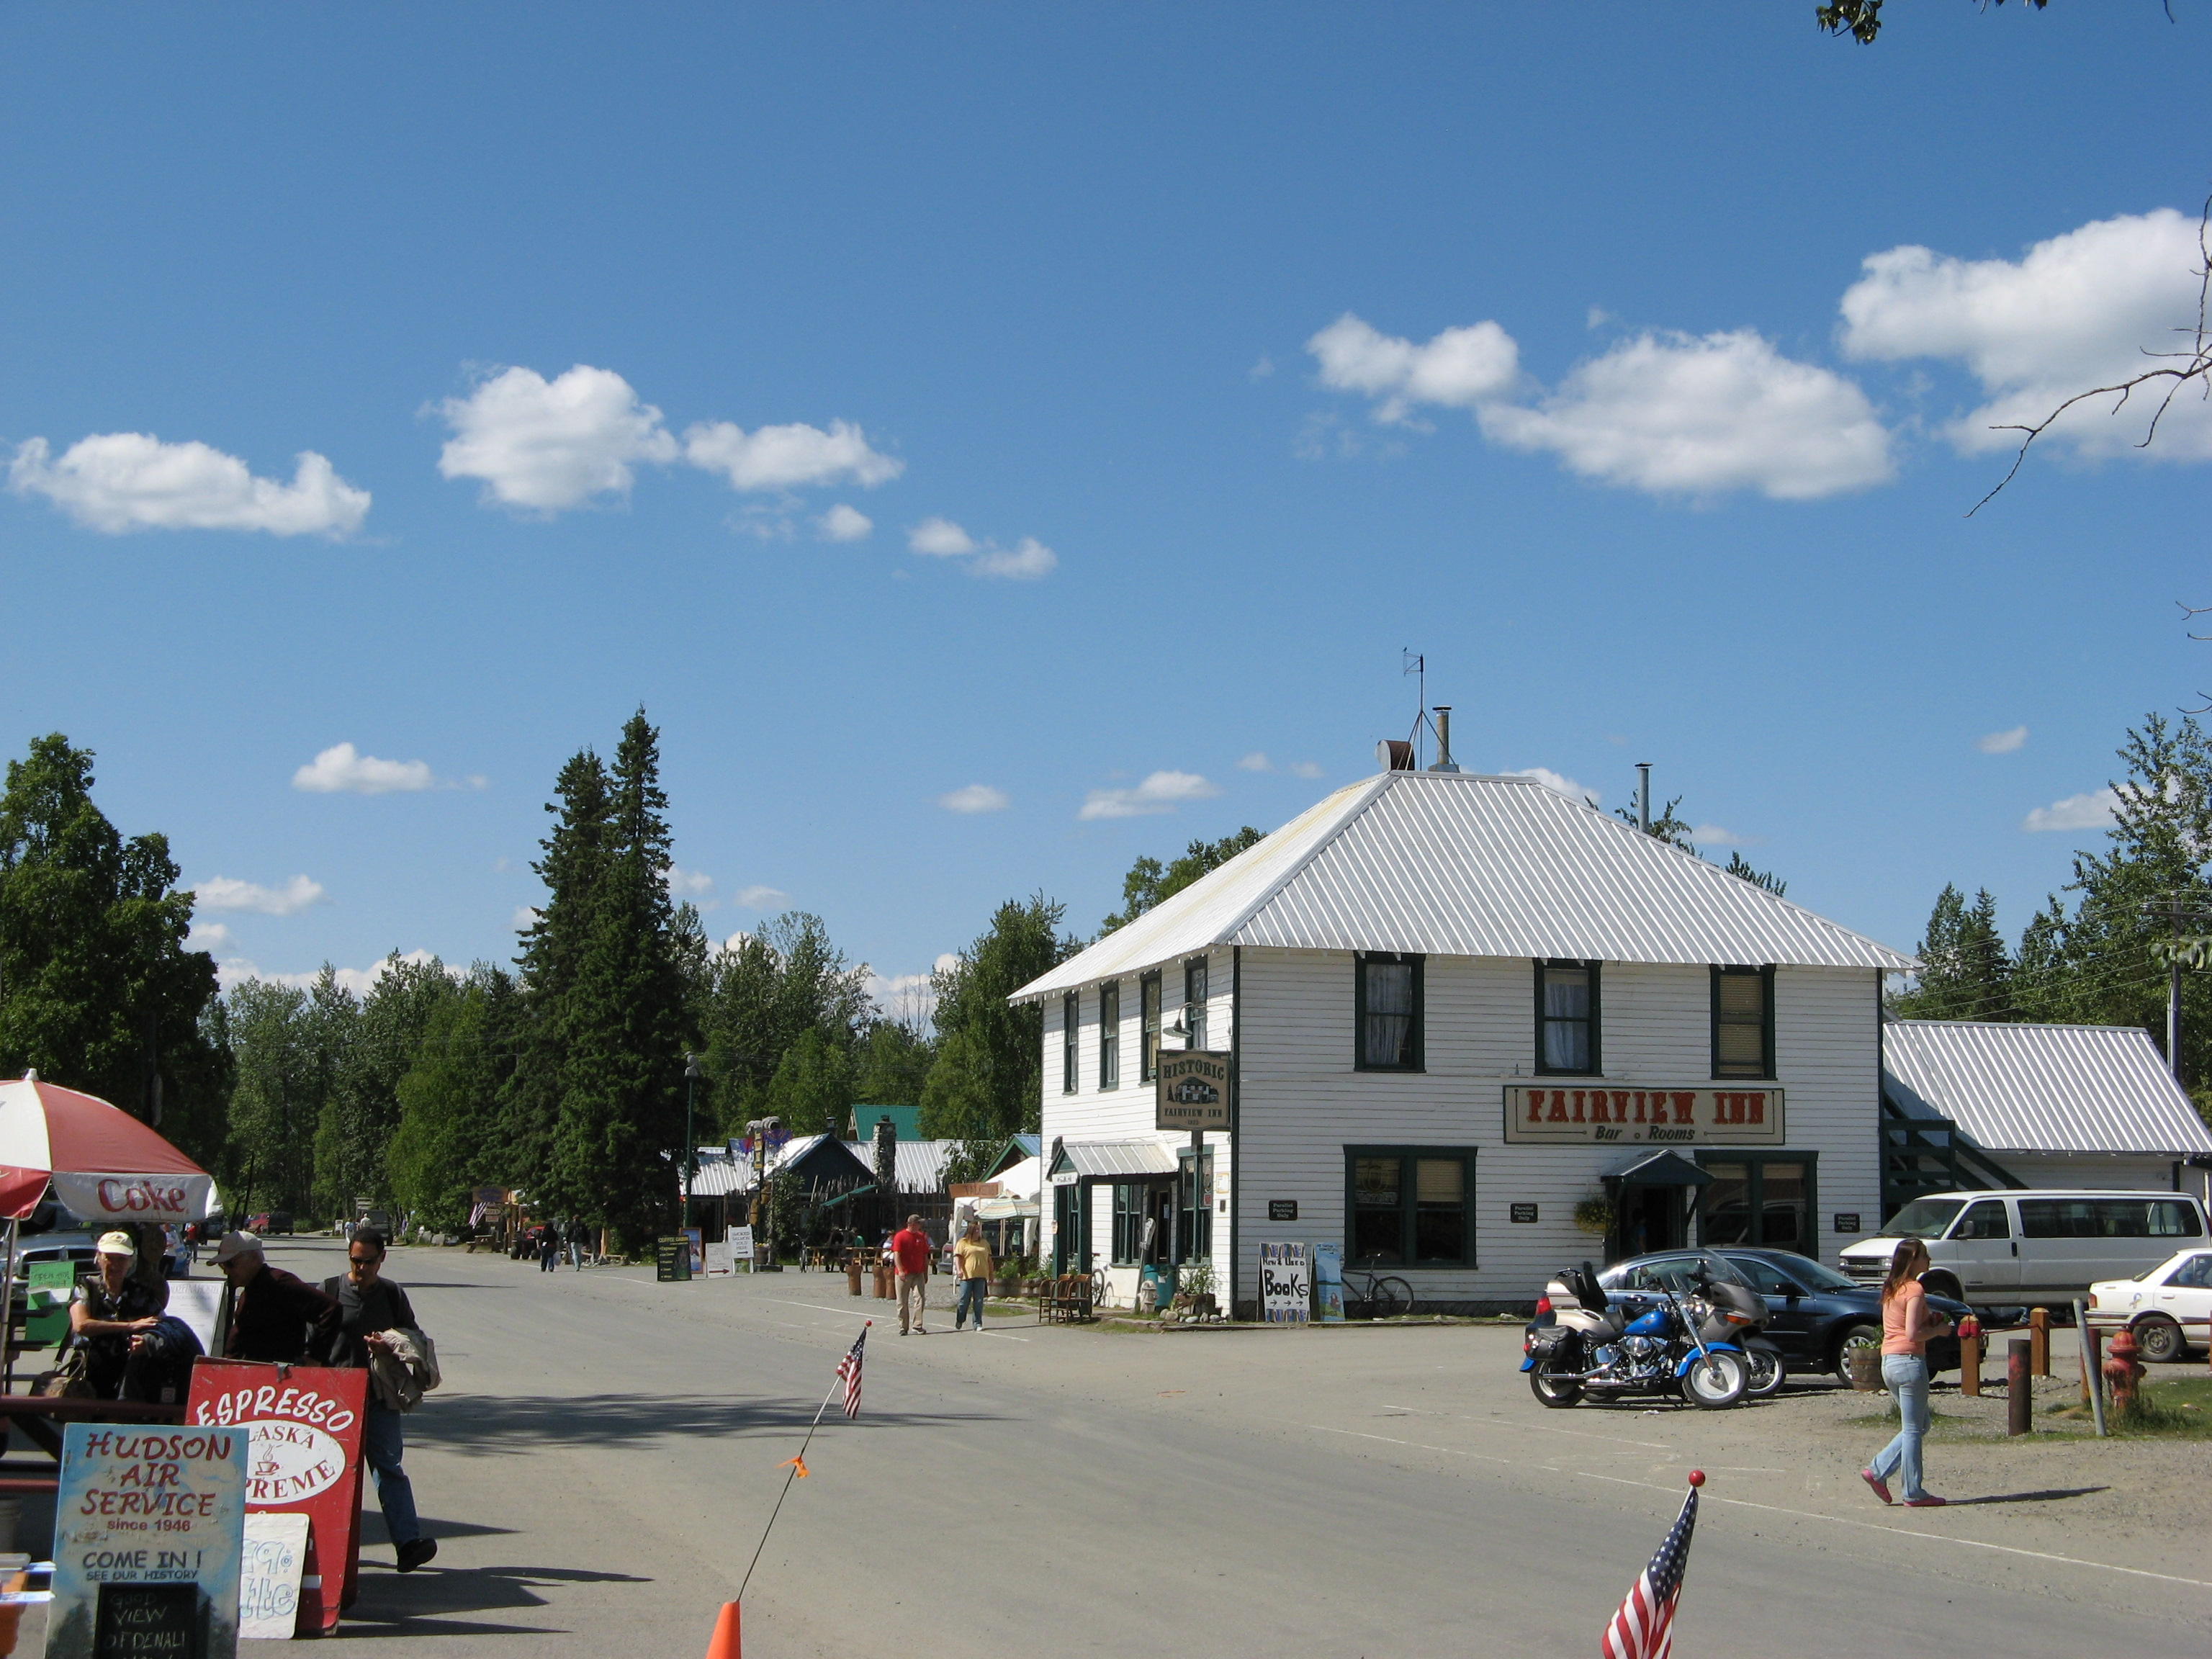 The Fairview Inn in Talkeetna, Alaska.